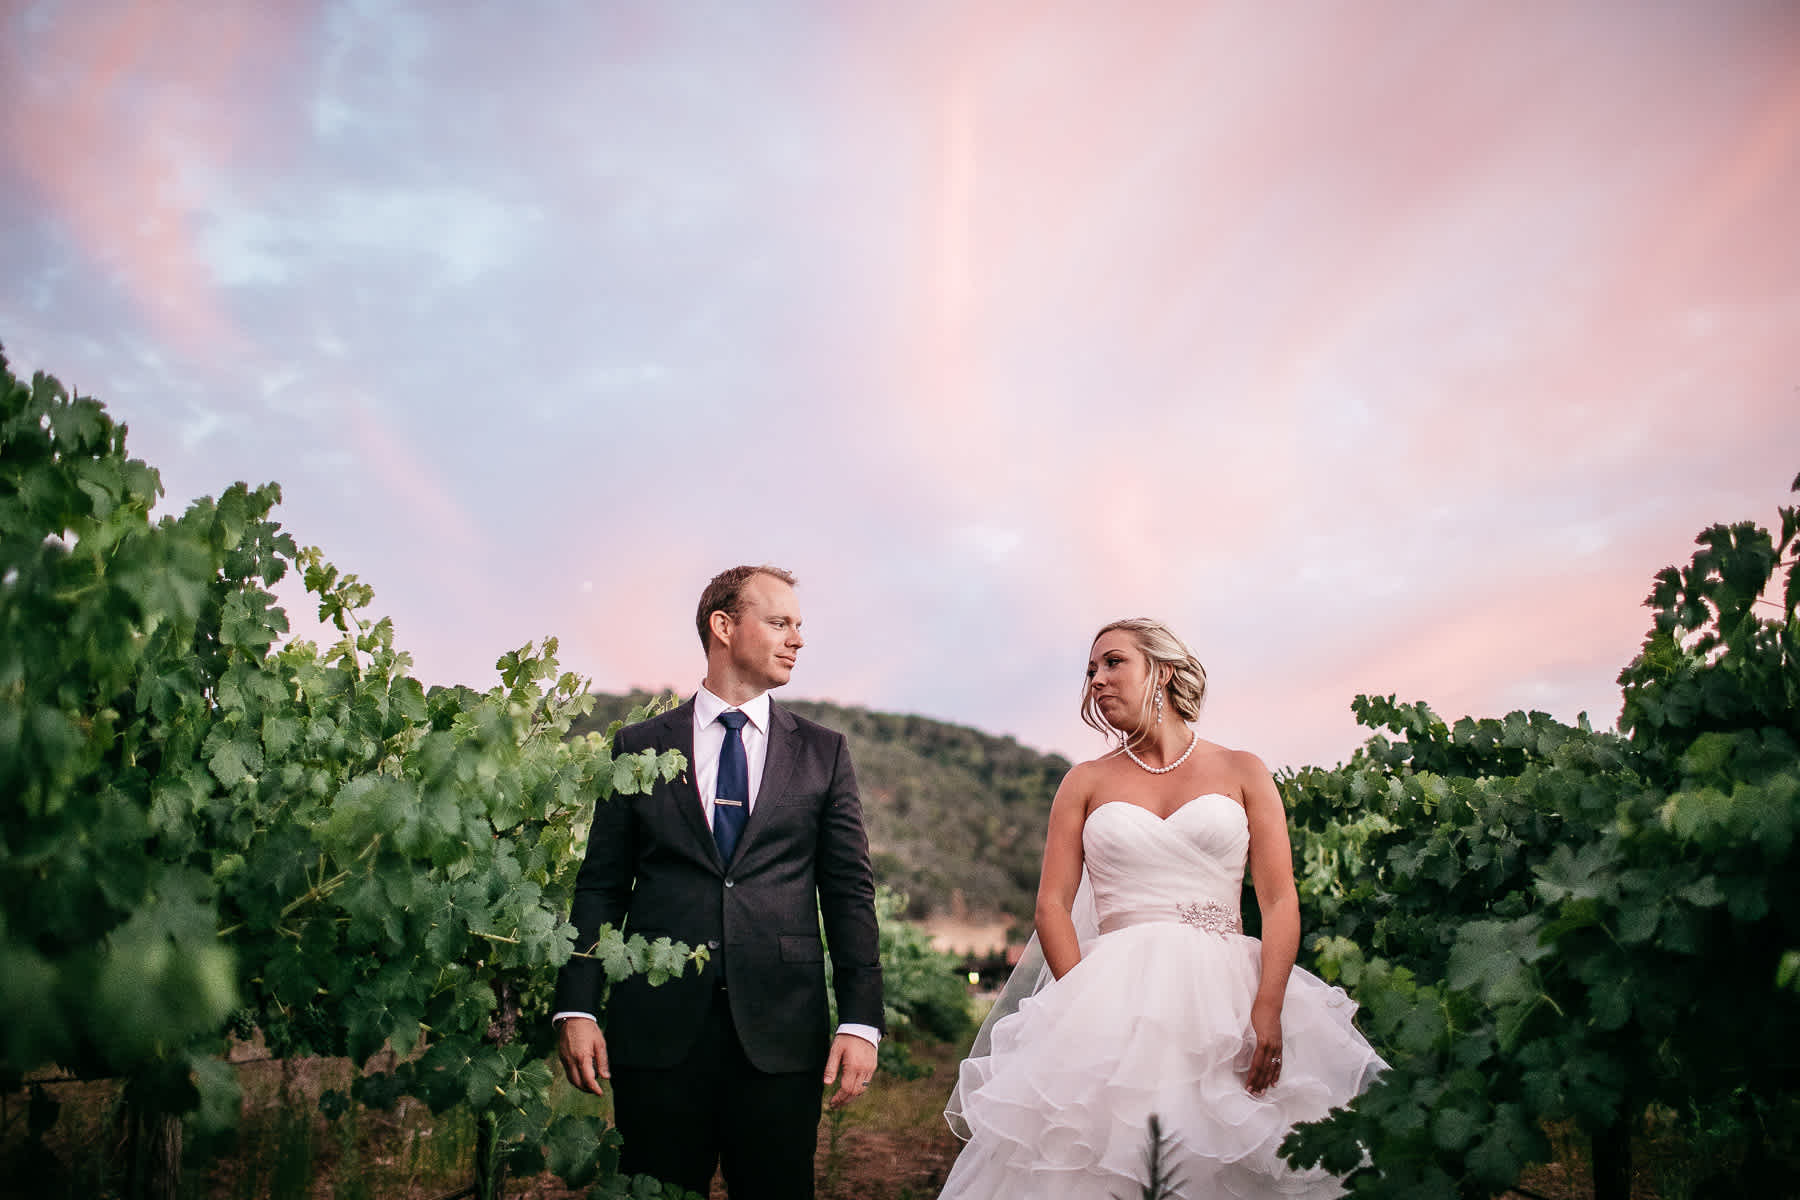 kirigin-cellars-gilroy-summer-sunset-wedding-91